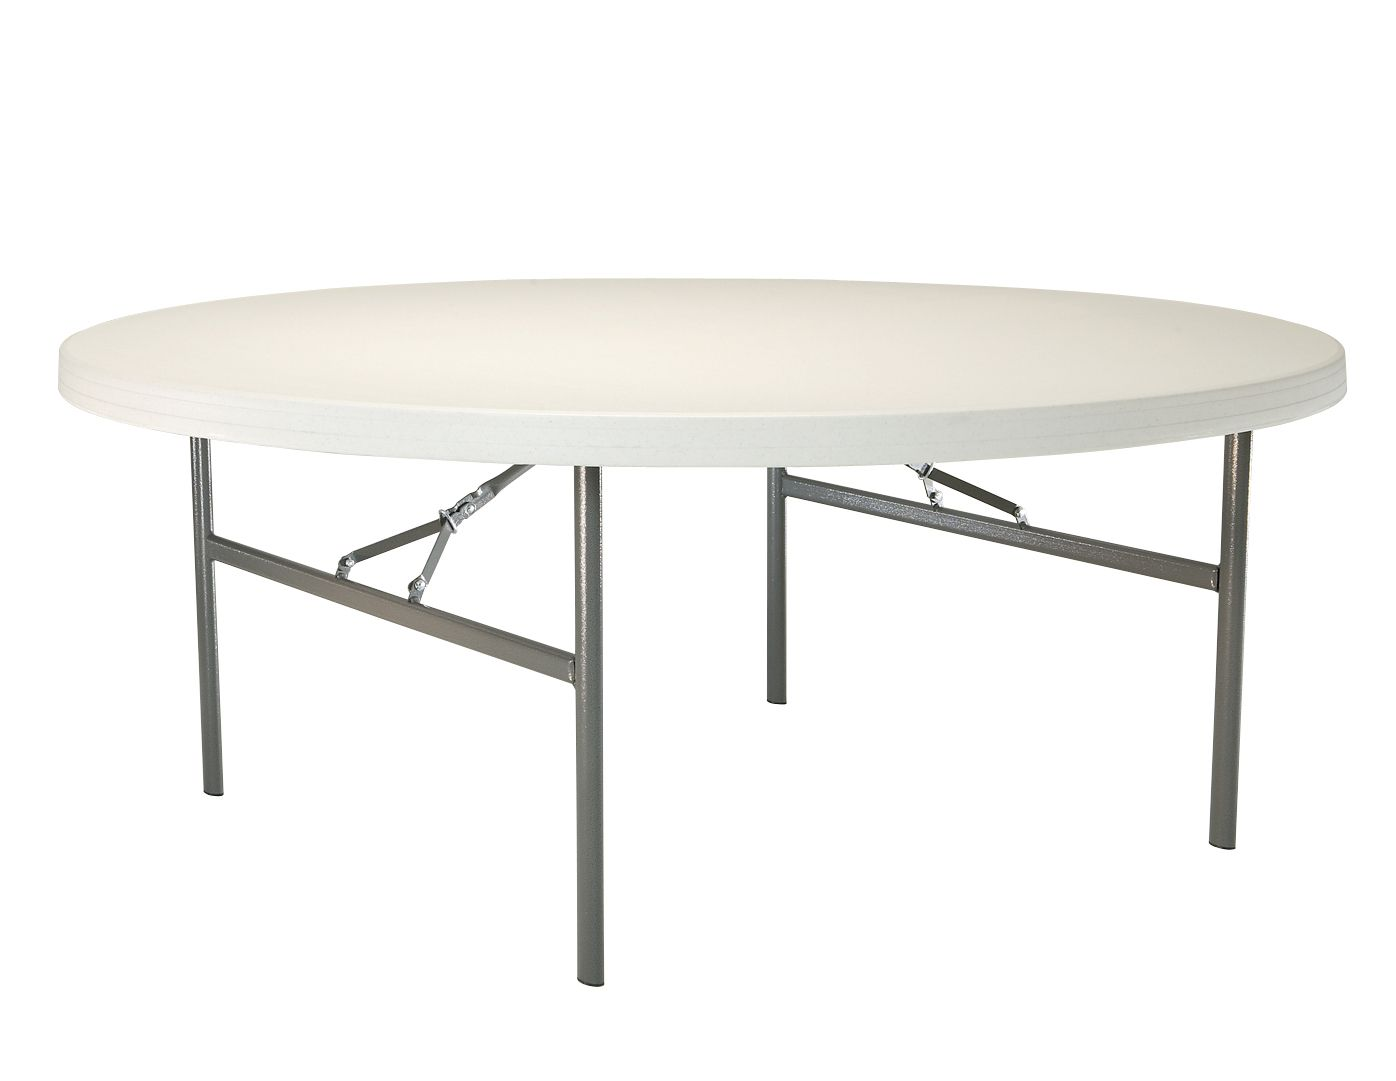 72inch Round Table Bel Ayre Rentals Ltd